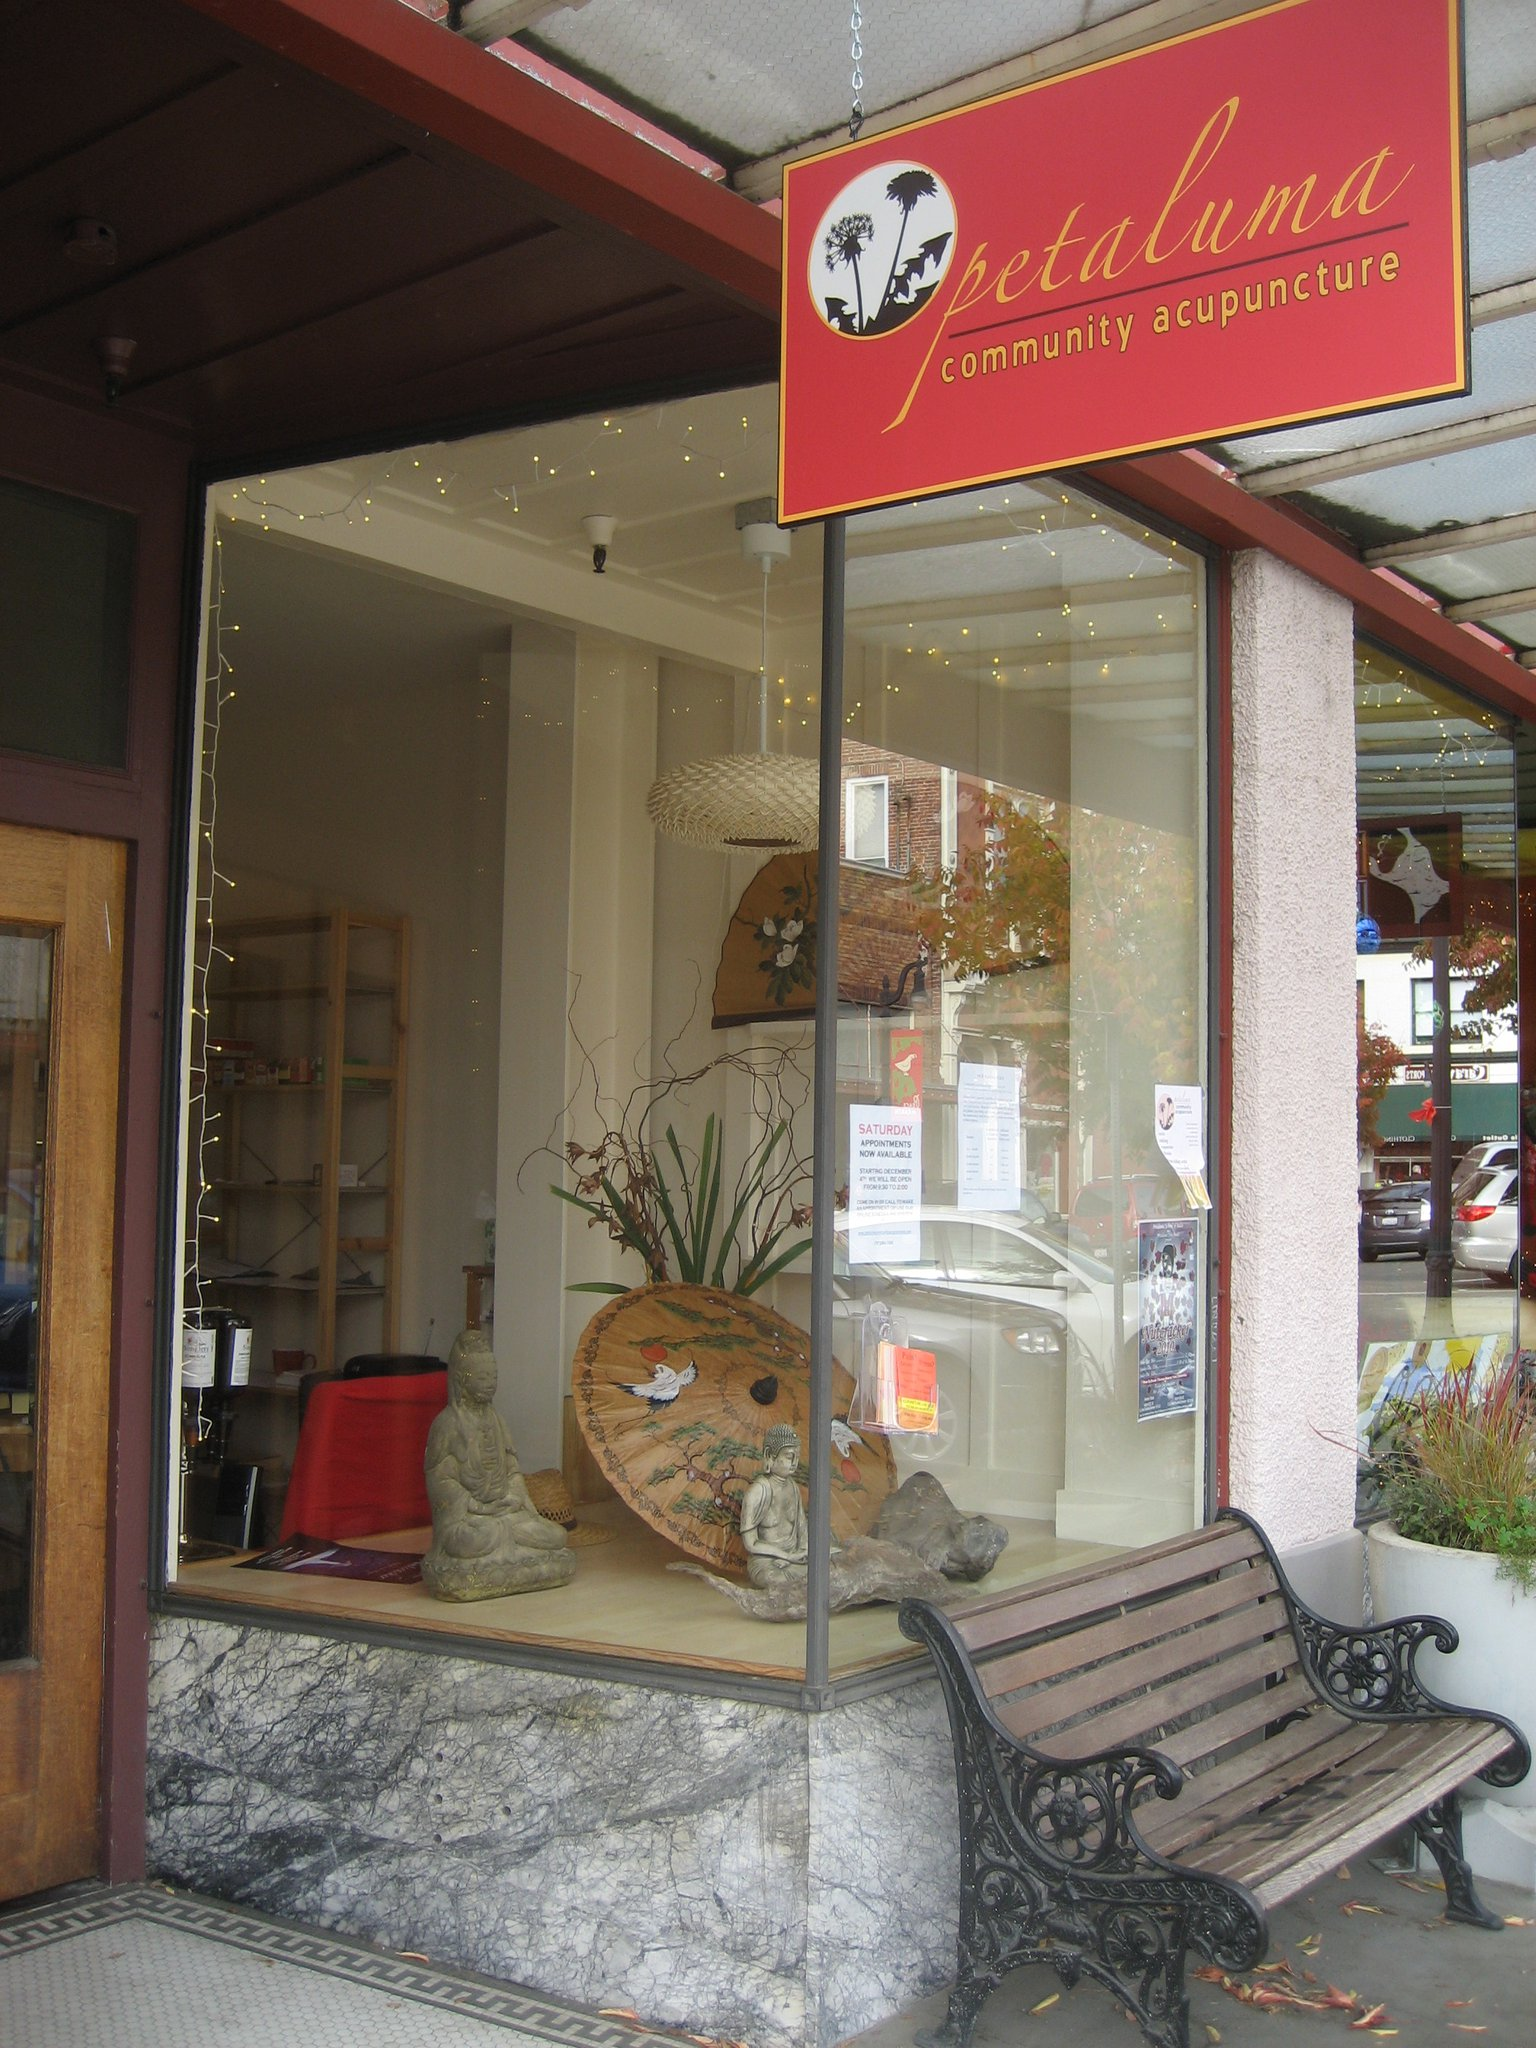 image of Petaluma Community Acupuncture